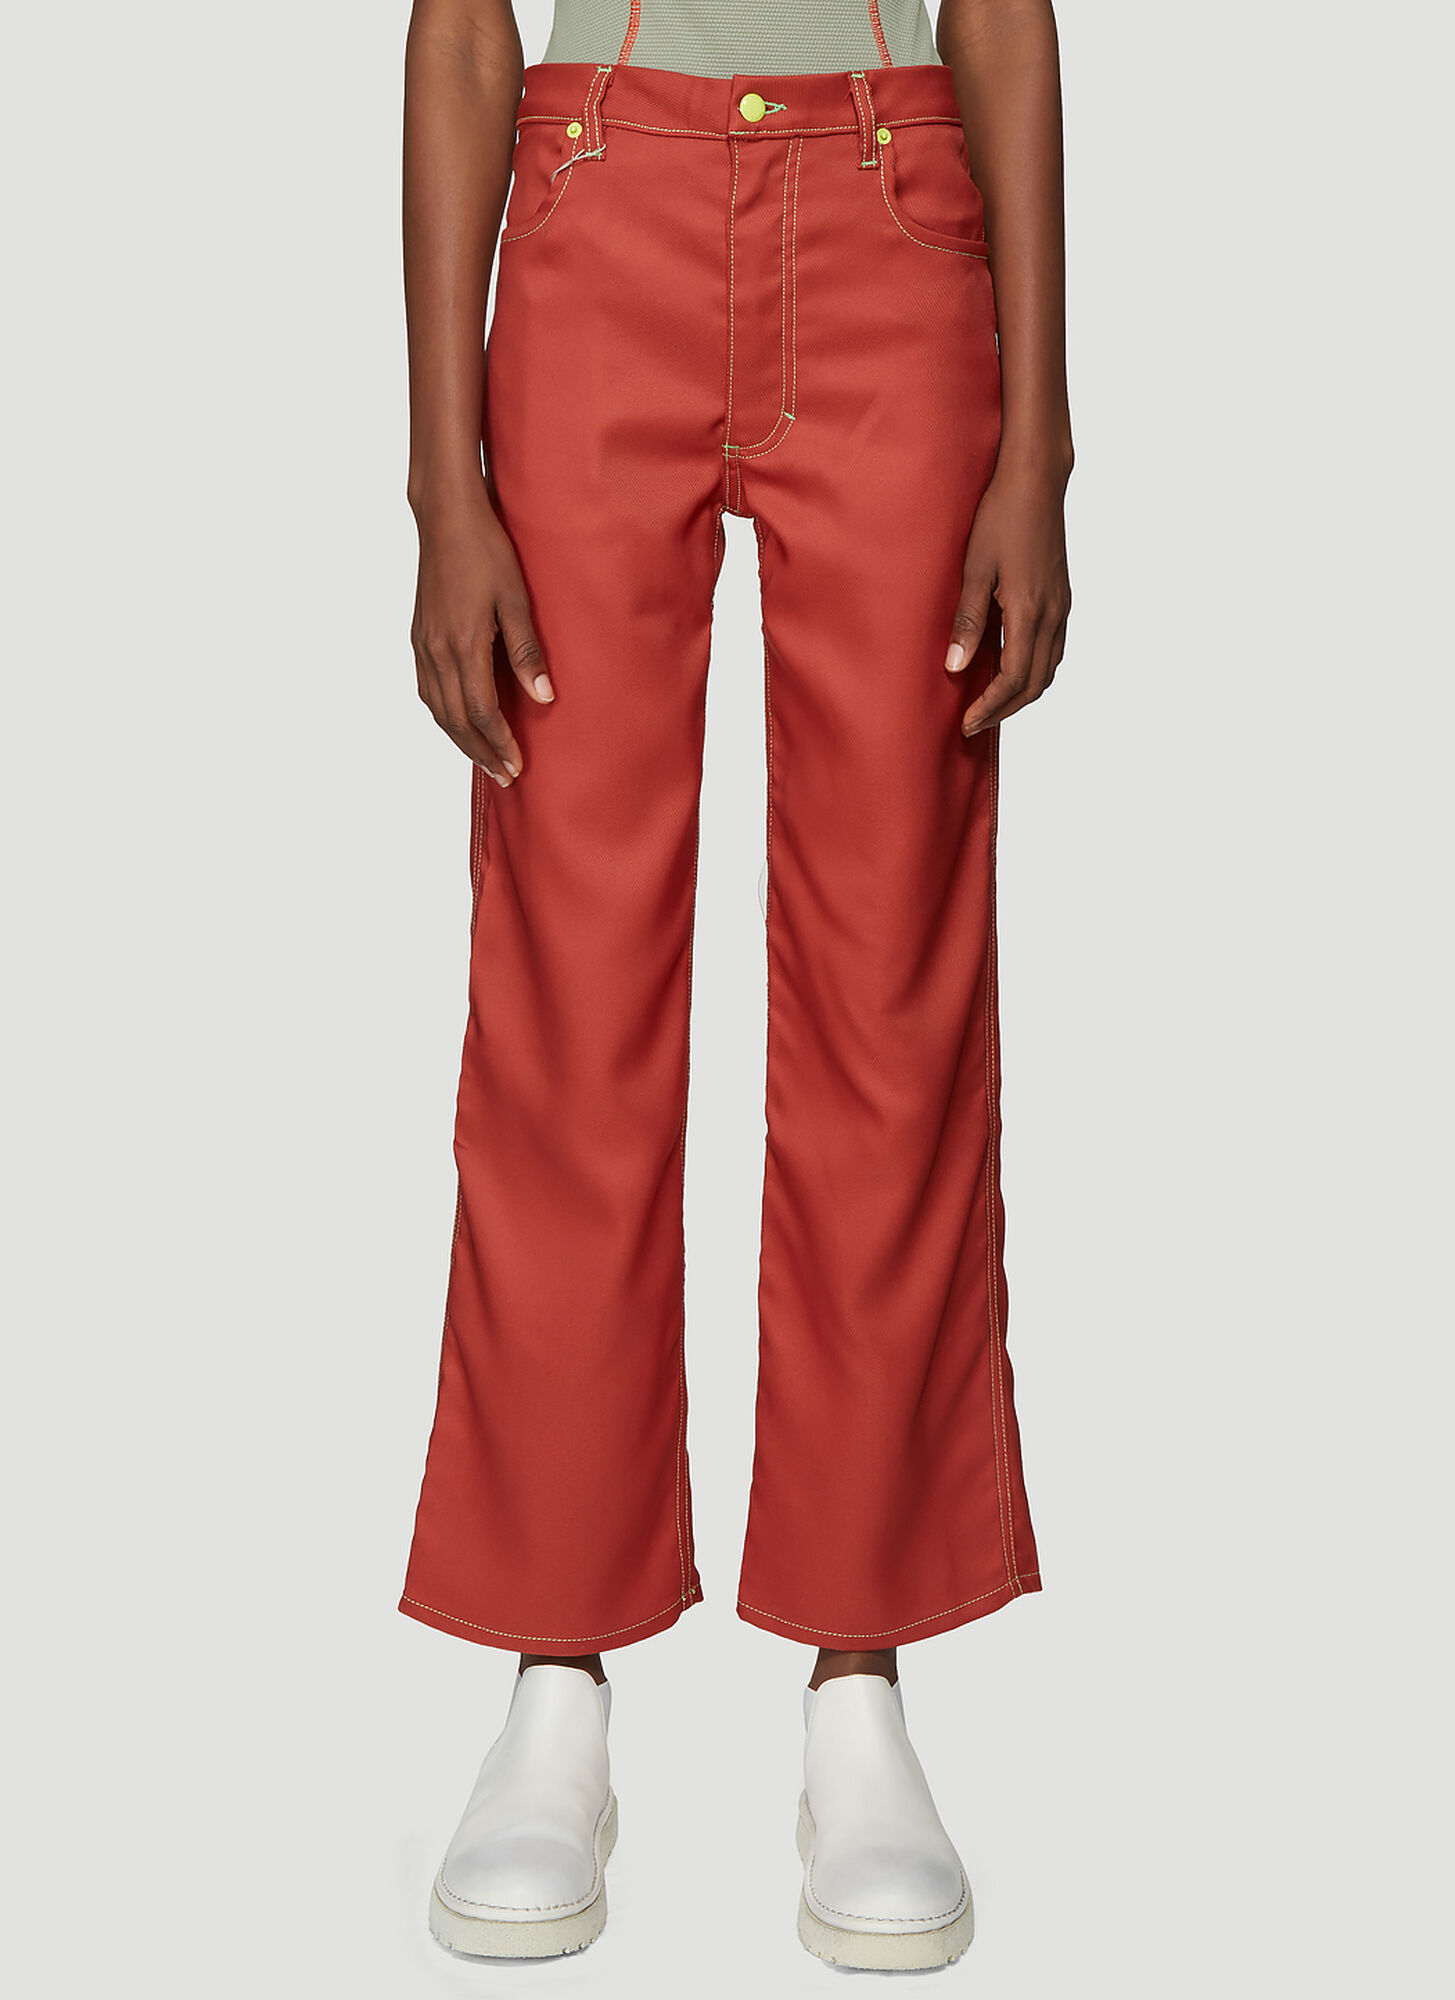 Eckhaus Latta Wide Leg Jeans in Red